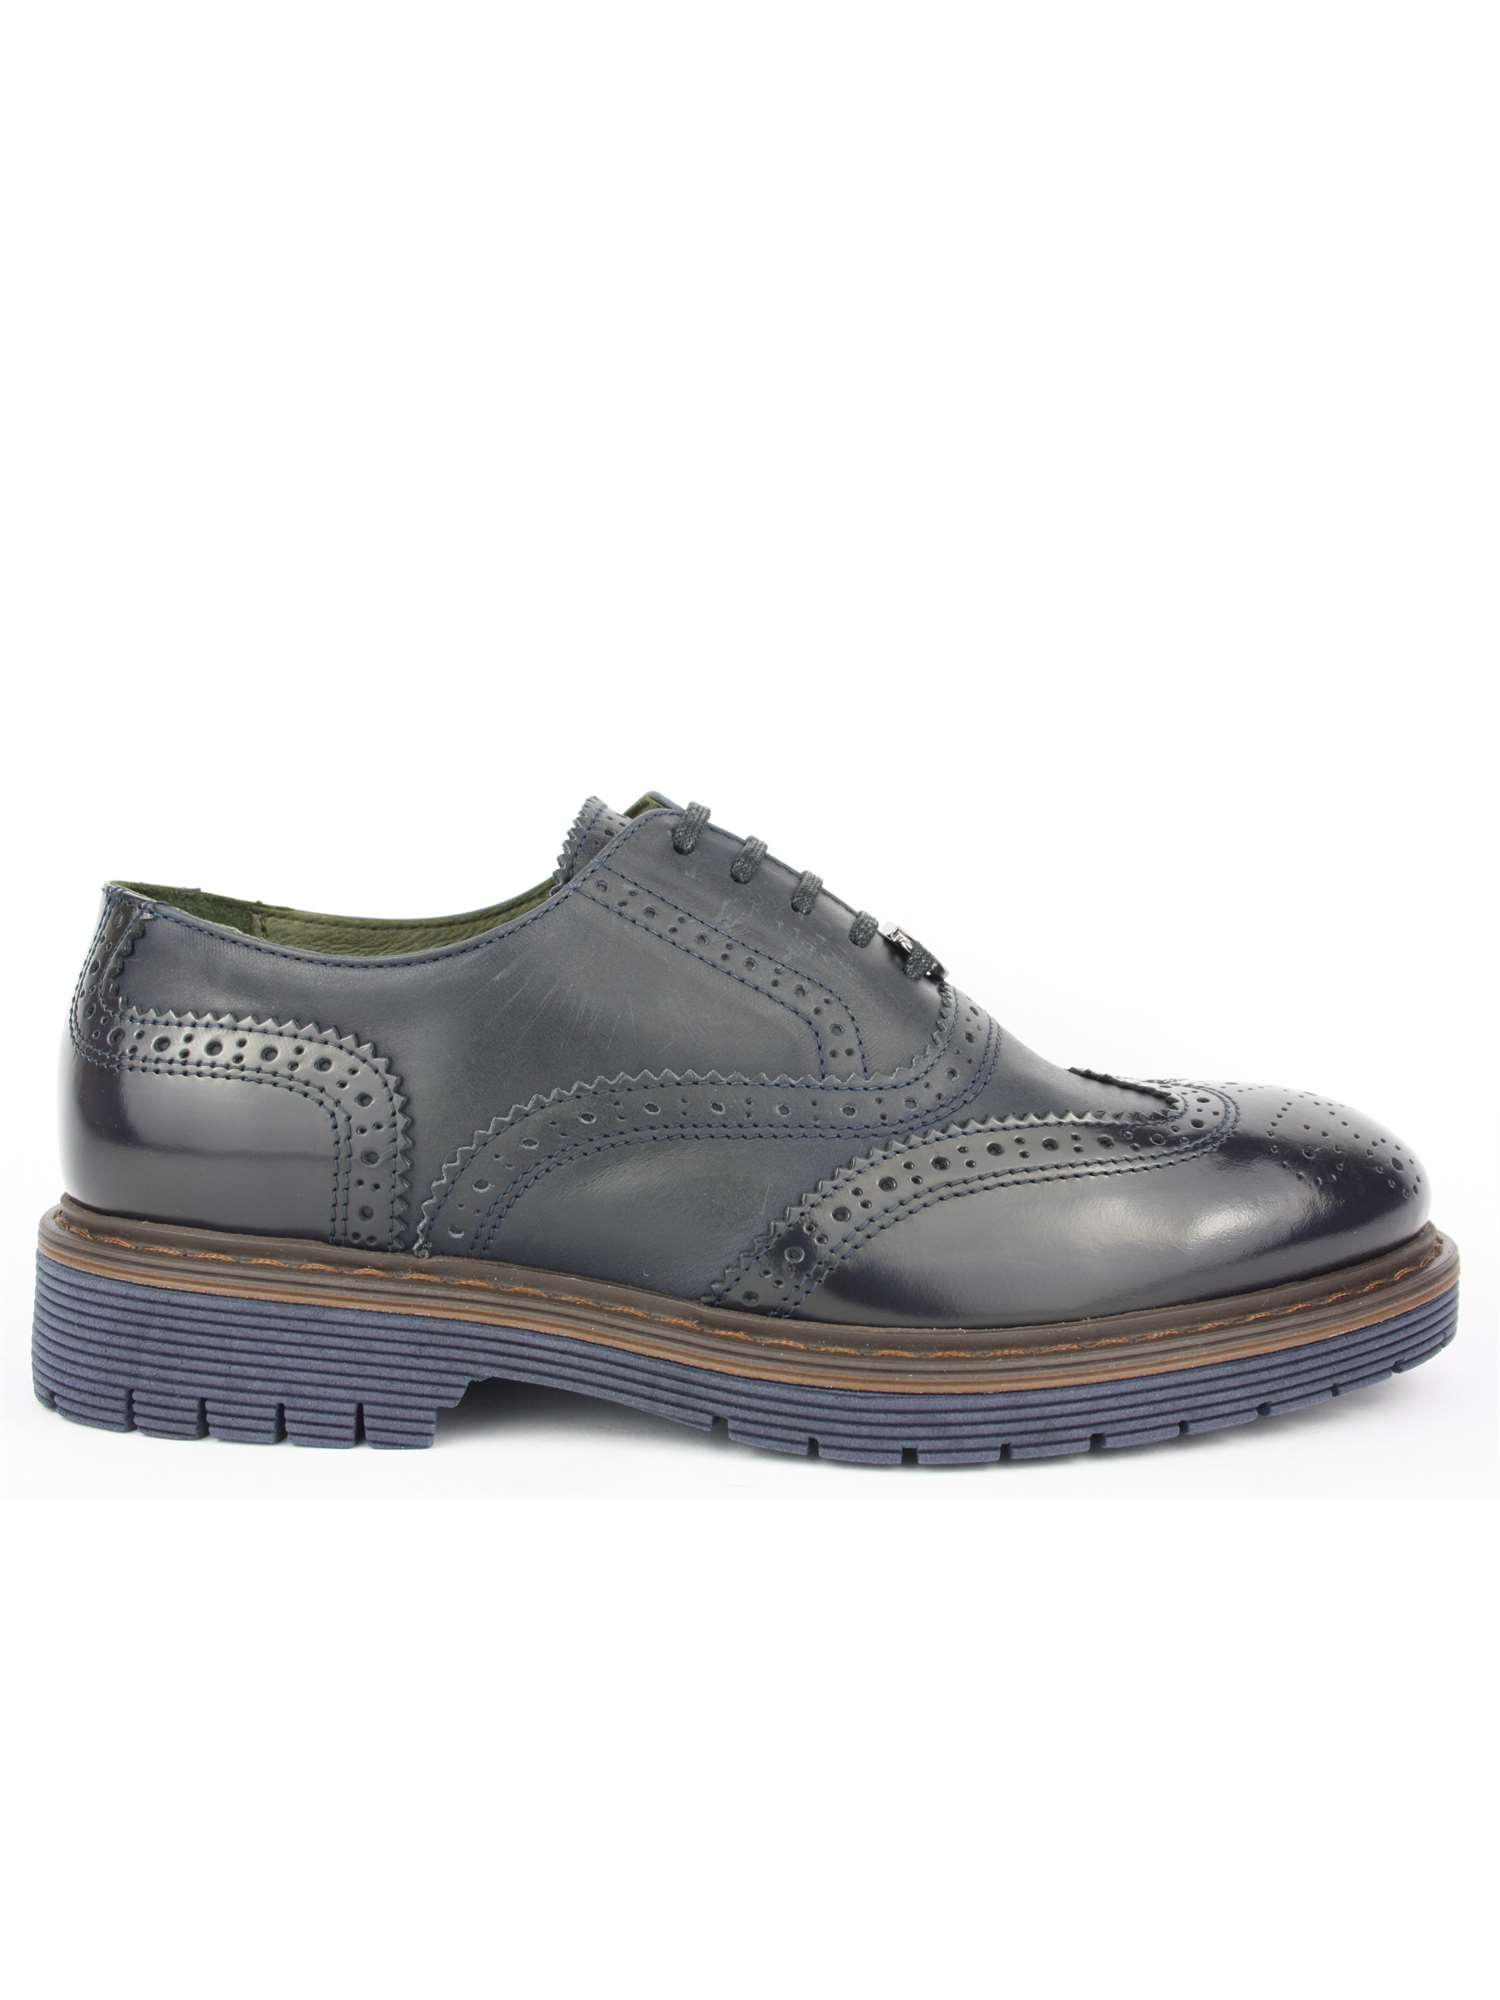 Ambitious Tipo Inglese Lacci Shoes Scarpa Blu WEe9IDH2Y